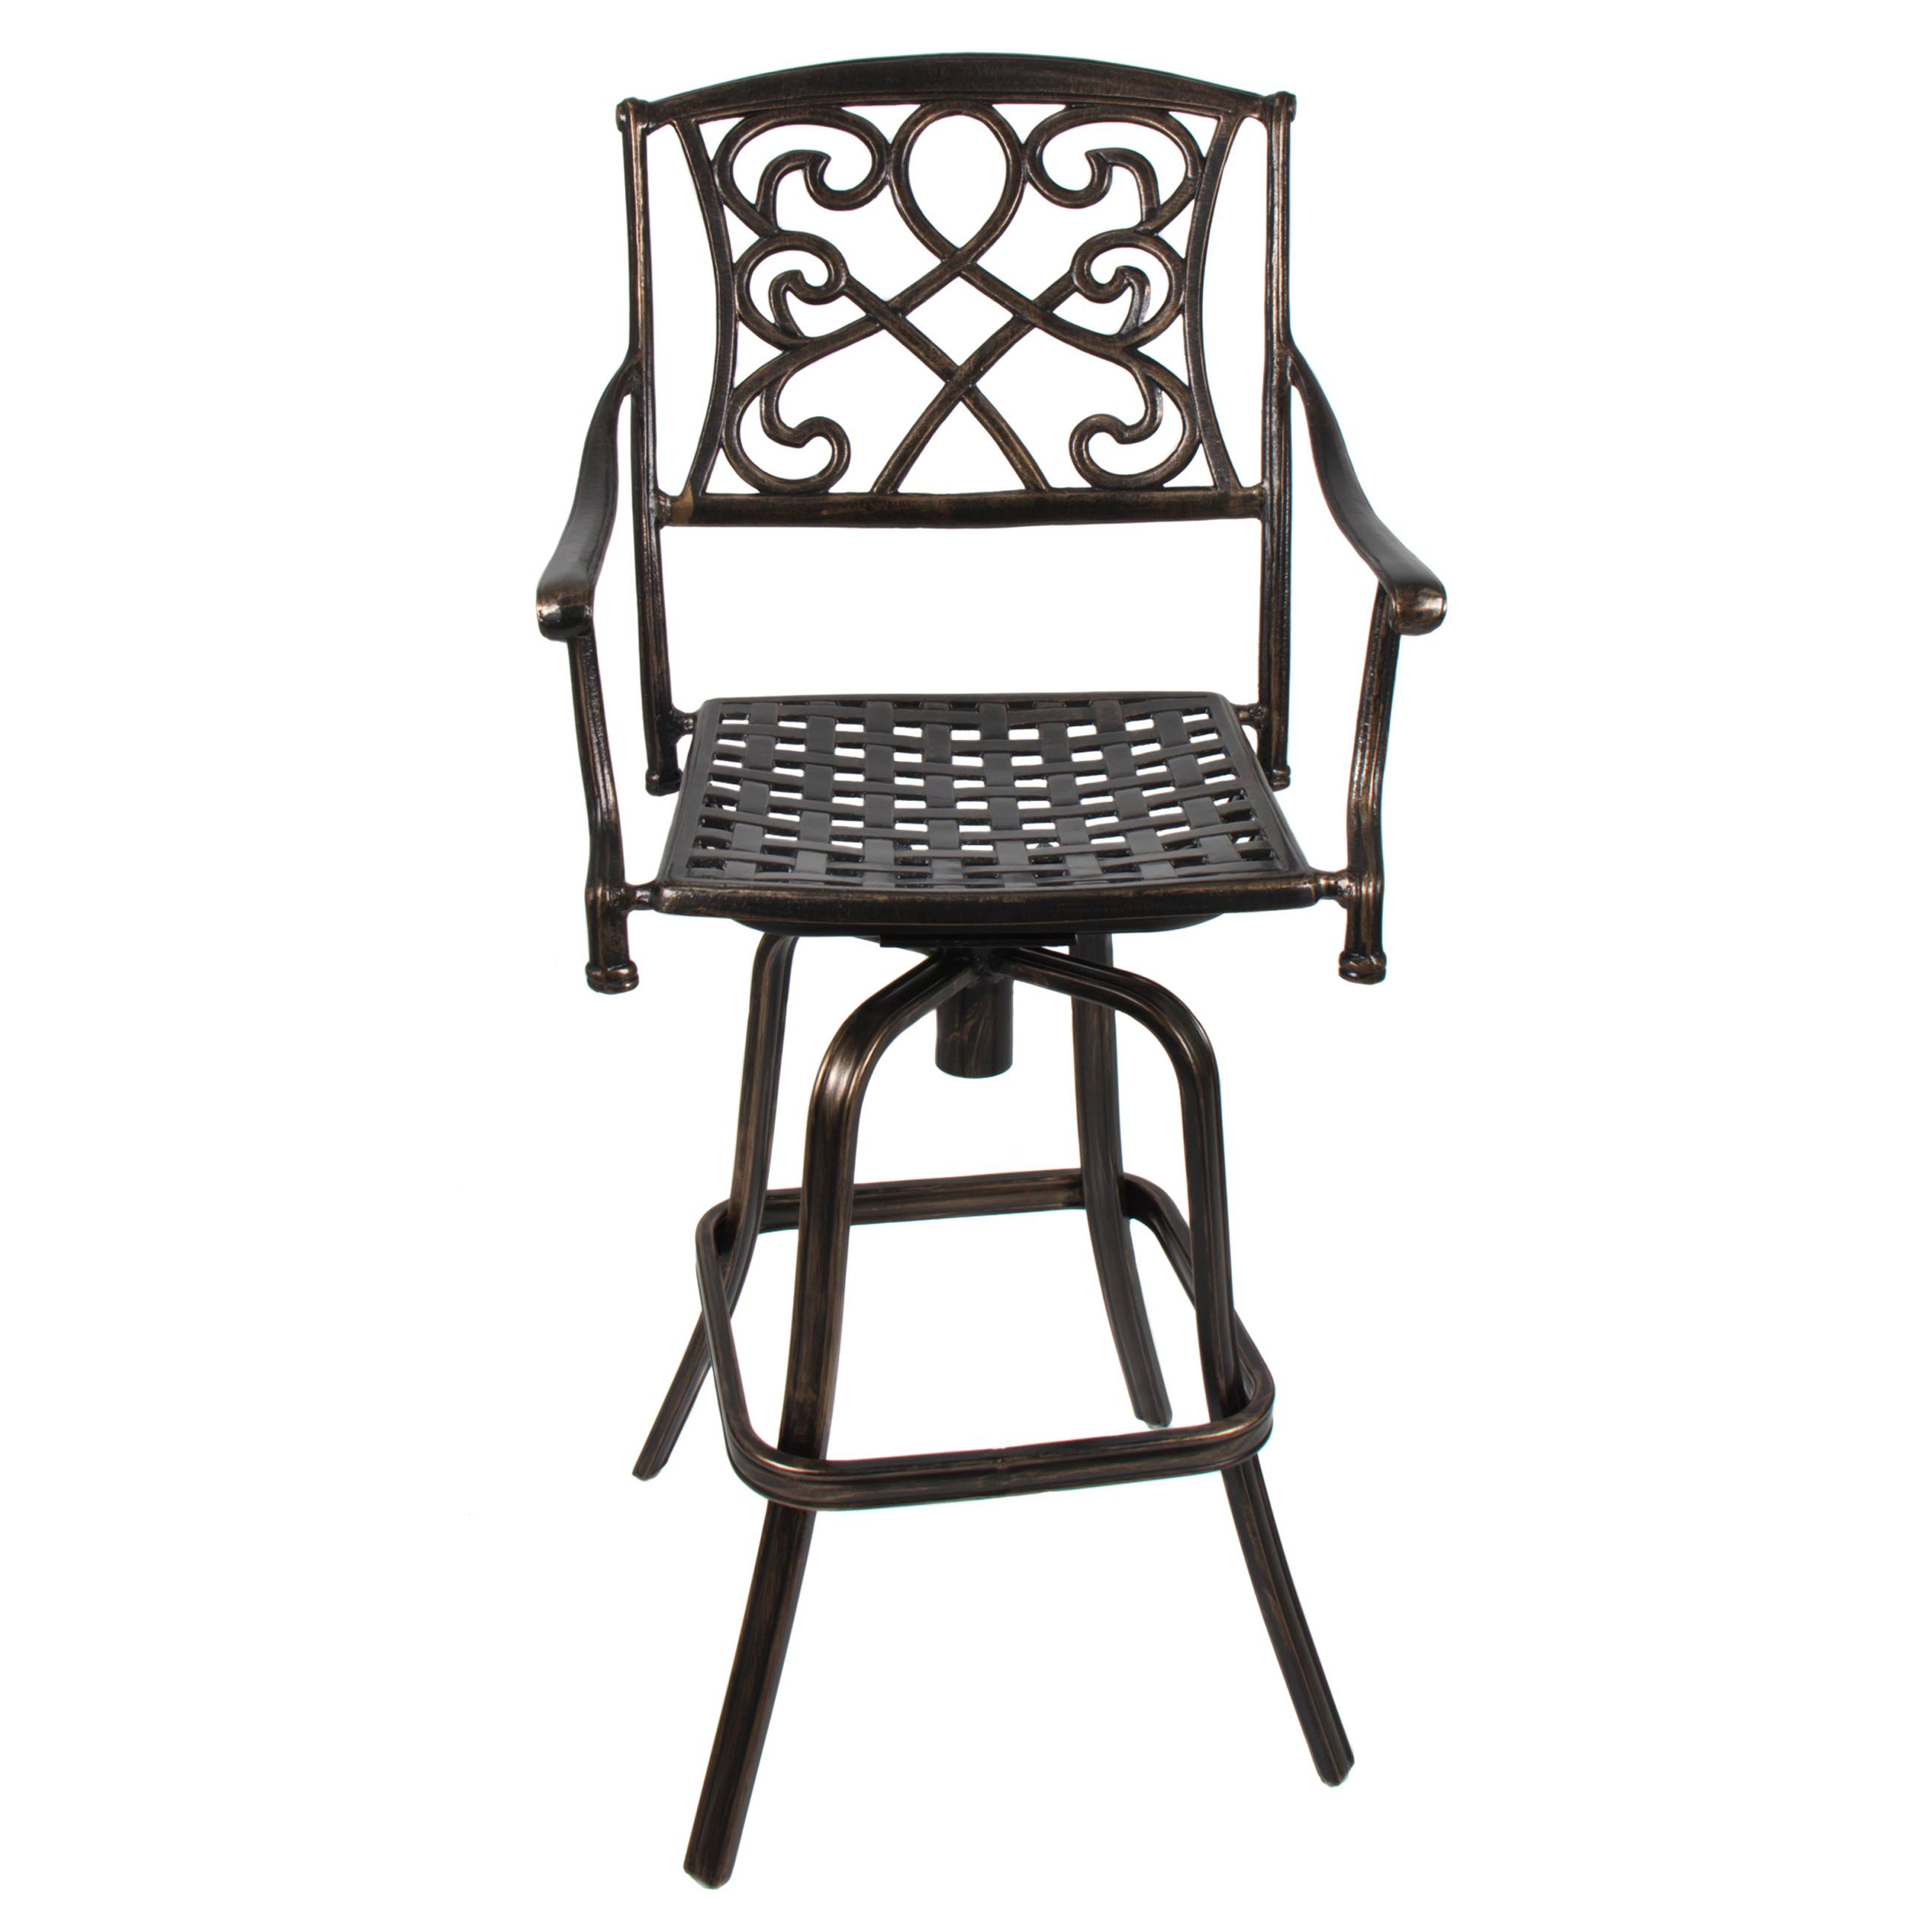 Lovely Bar Height Patio Set with Swivel Chairs